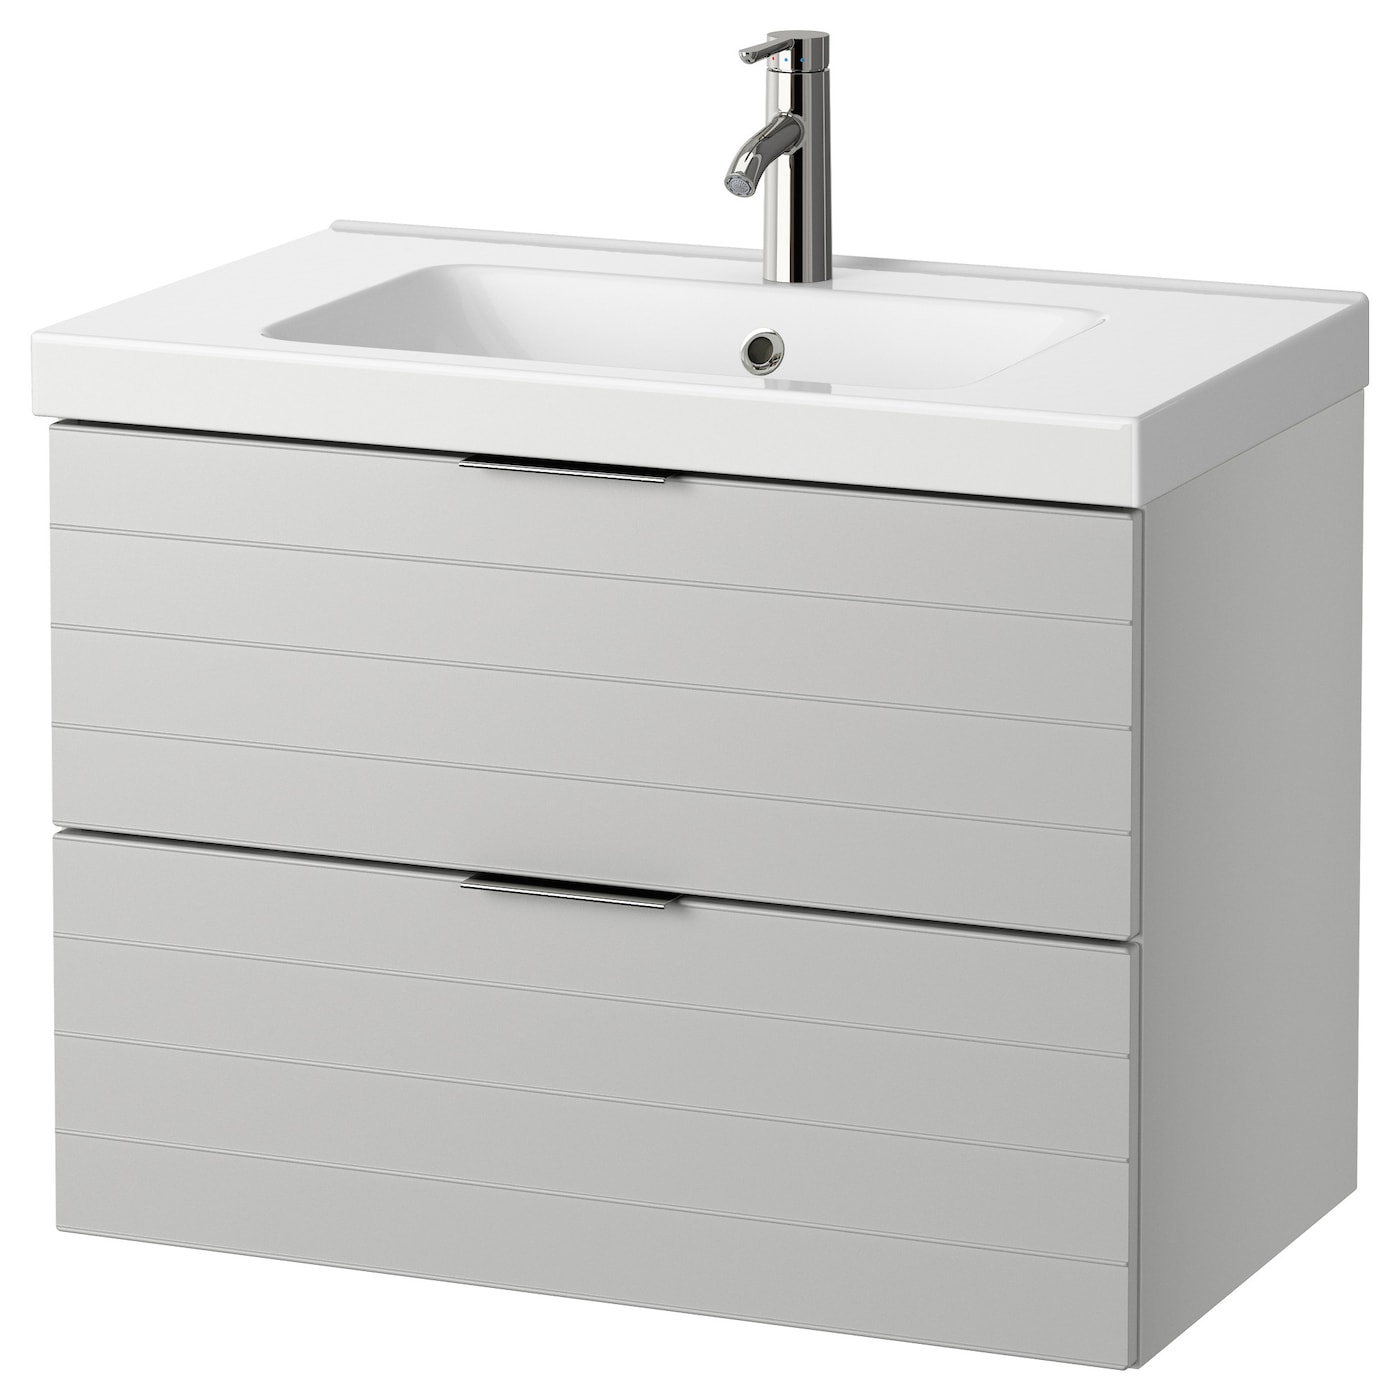 odensvik godmorgon meuble lavabo 2tir gris clair 80x49x64 cm ikea. Black Bedroom Furniture Sets. Home Design Ideas